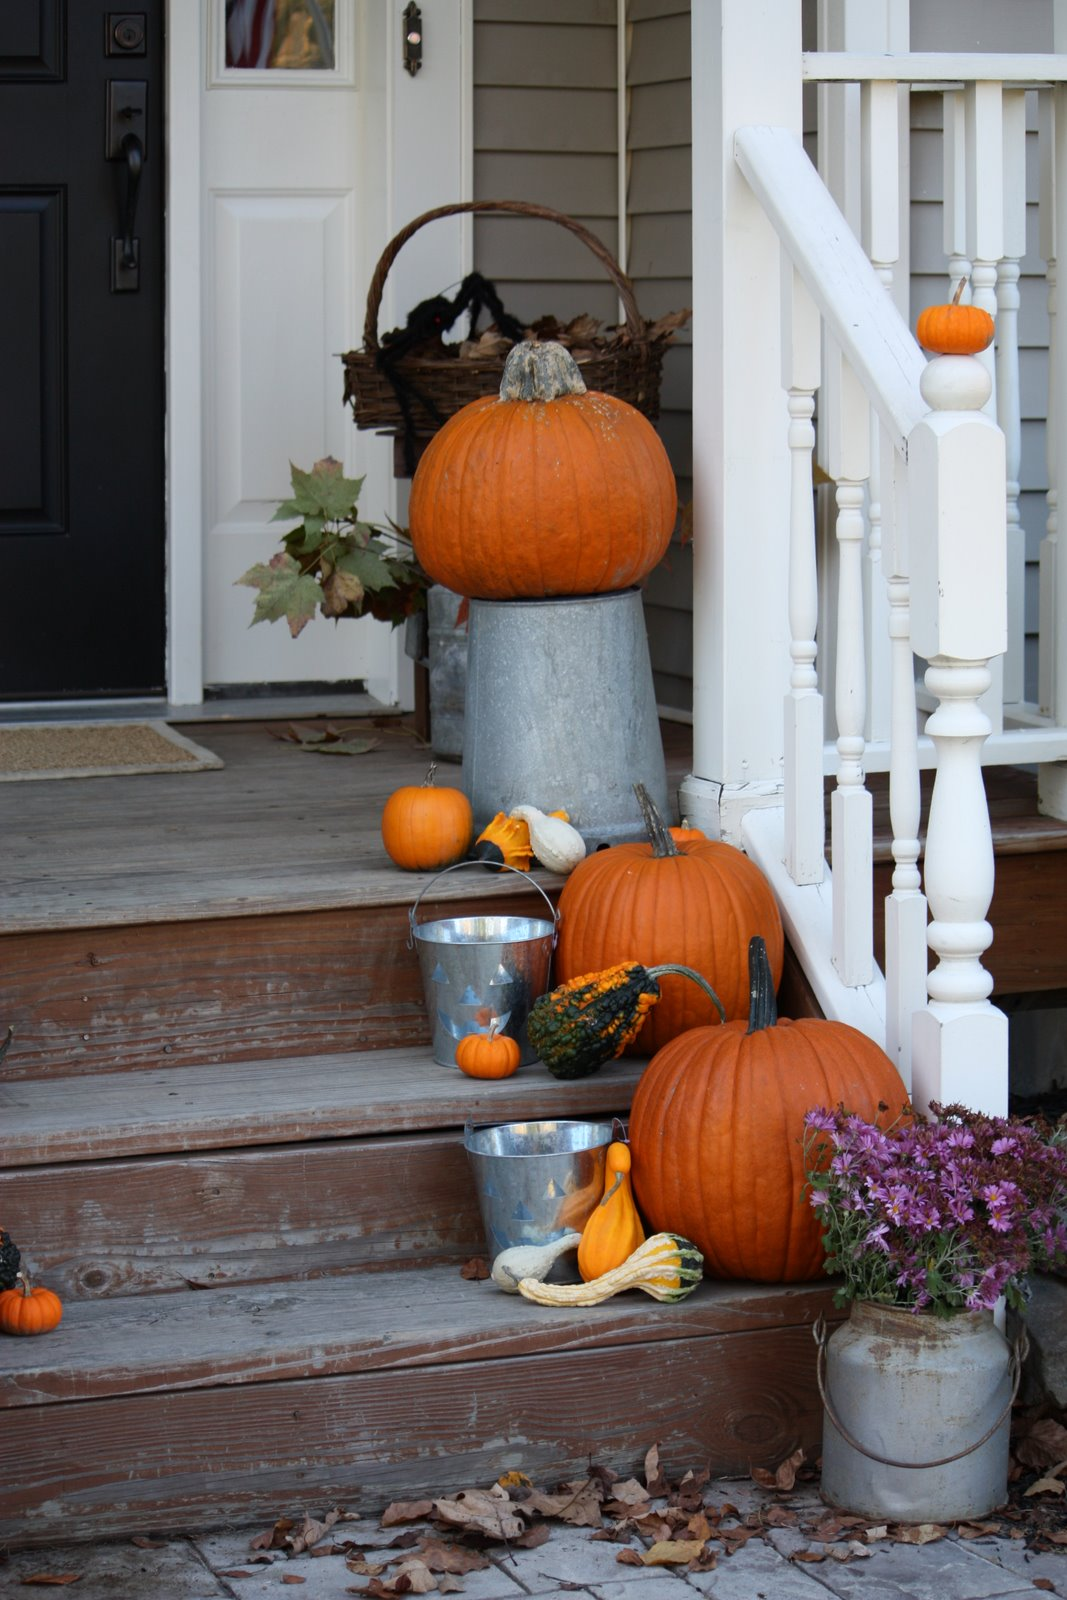 Easy outdoor fall decorating ideas - Outdoor Fall Decorating Ideas